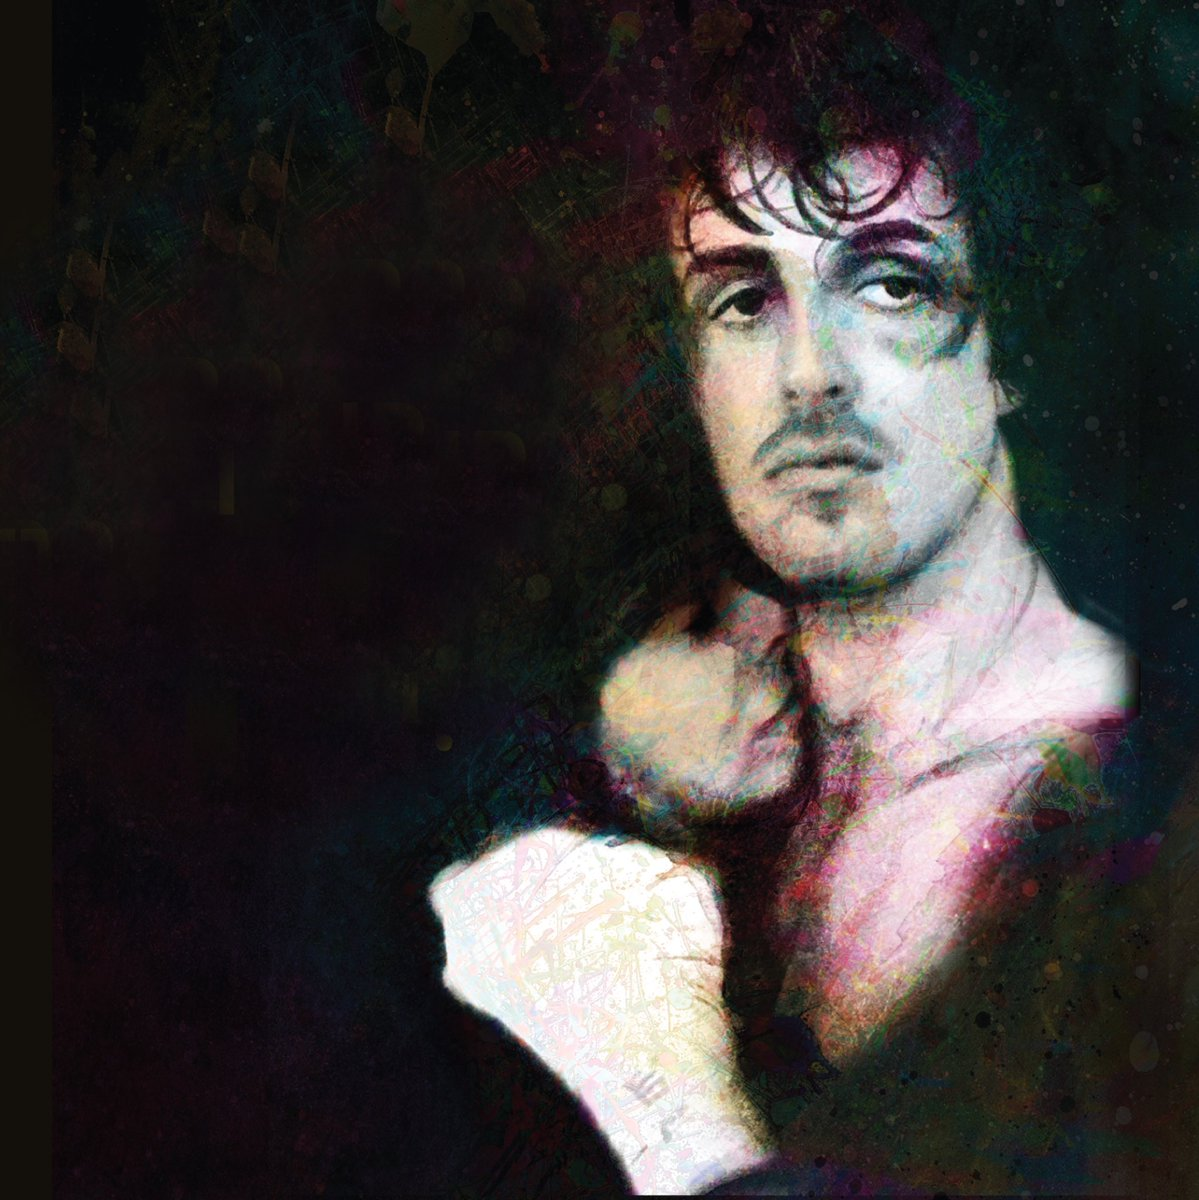 We cannot lose, we cannot be beaten, when love is our prize.  Rocky is a true love story.   Get your Limited Edition Fine art print at http://IconsInArt.com ! #rocky #rockybalboa #slystallone #stallone #artoftheday #fineartpainting  #valentines #adrianpennino #lovestorypic.twitter.com/ZYNLbpE2rL